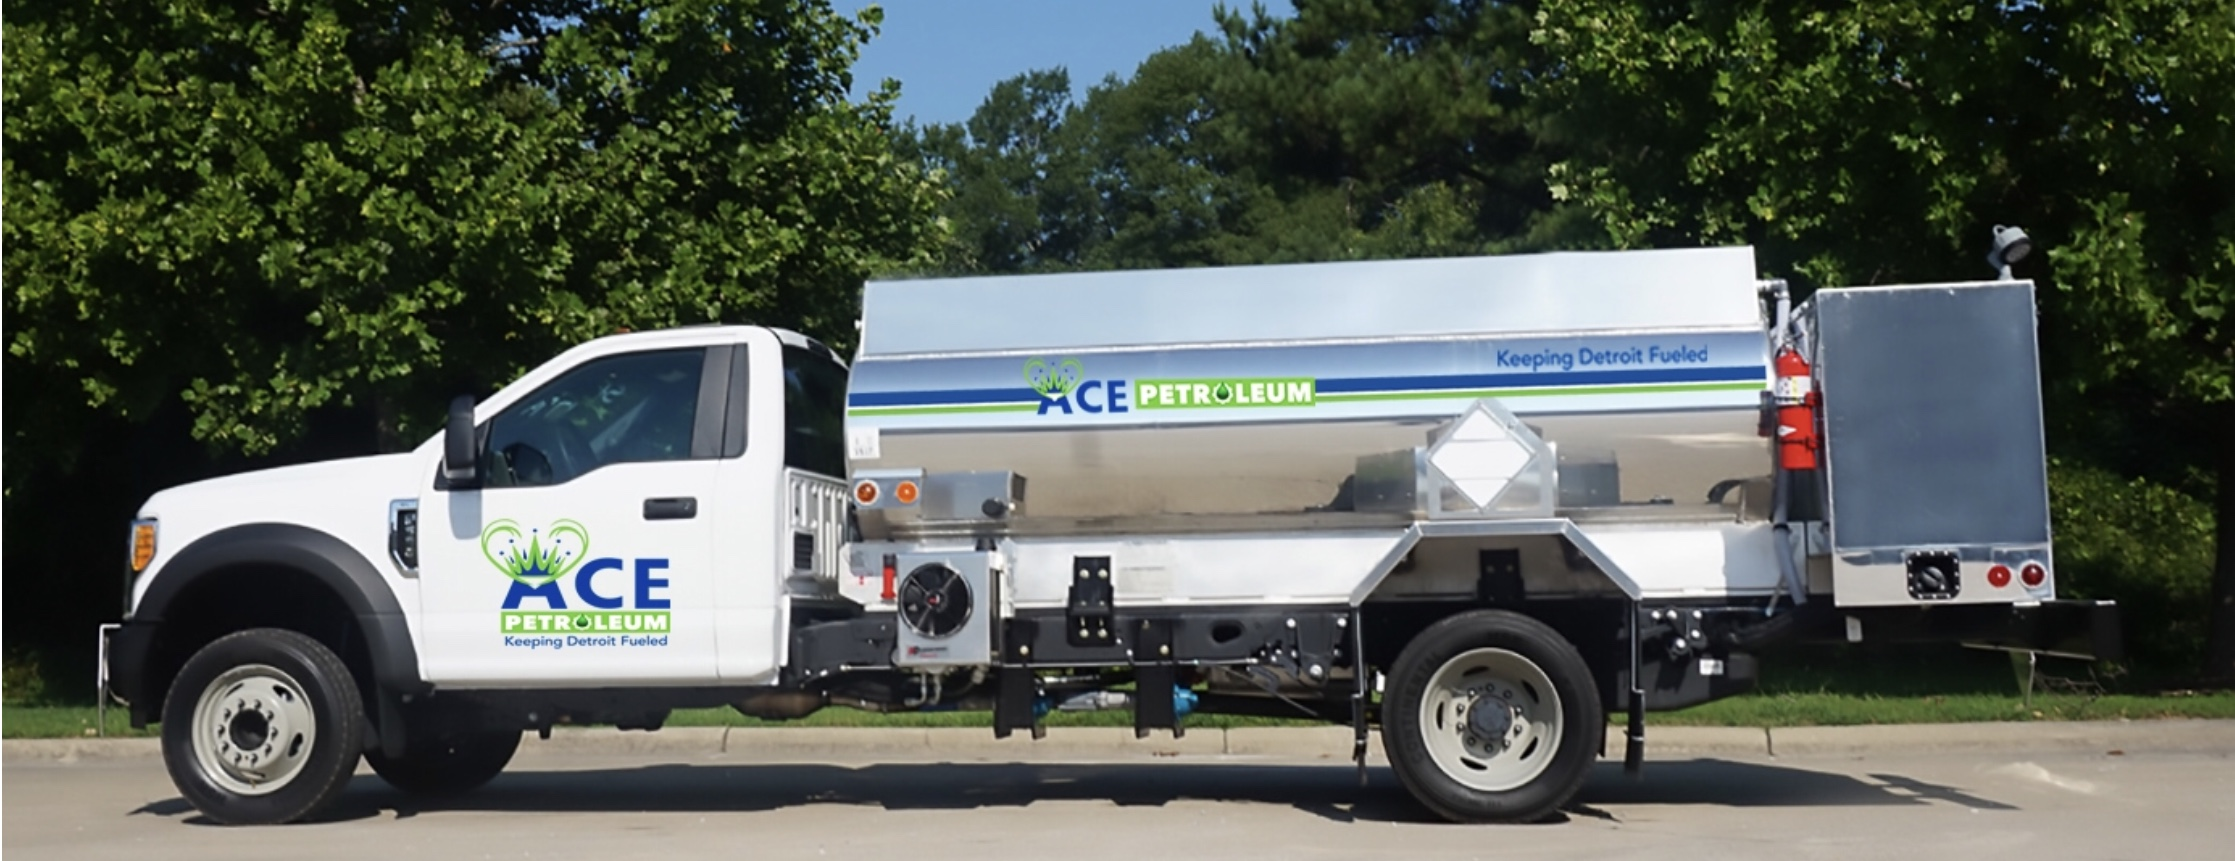 Image result for ACE petroleum